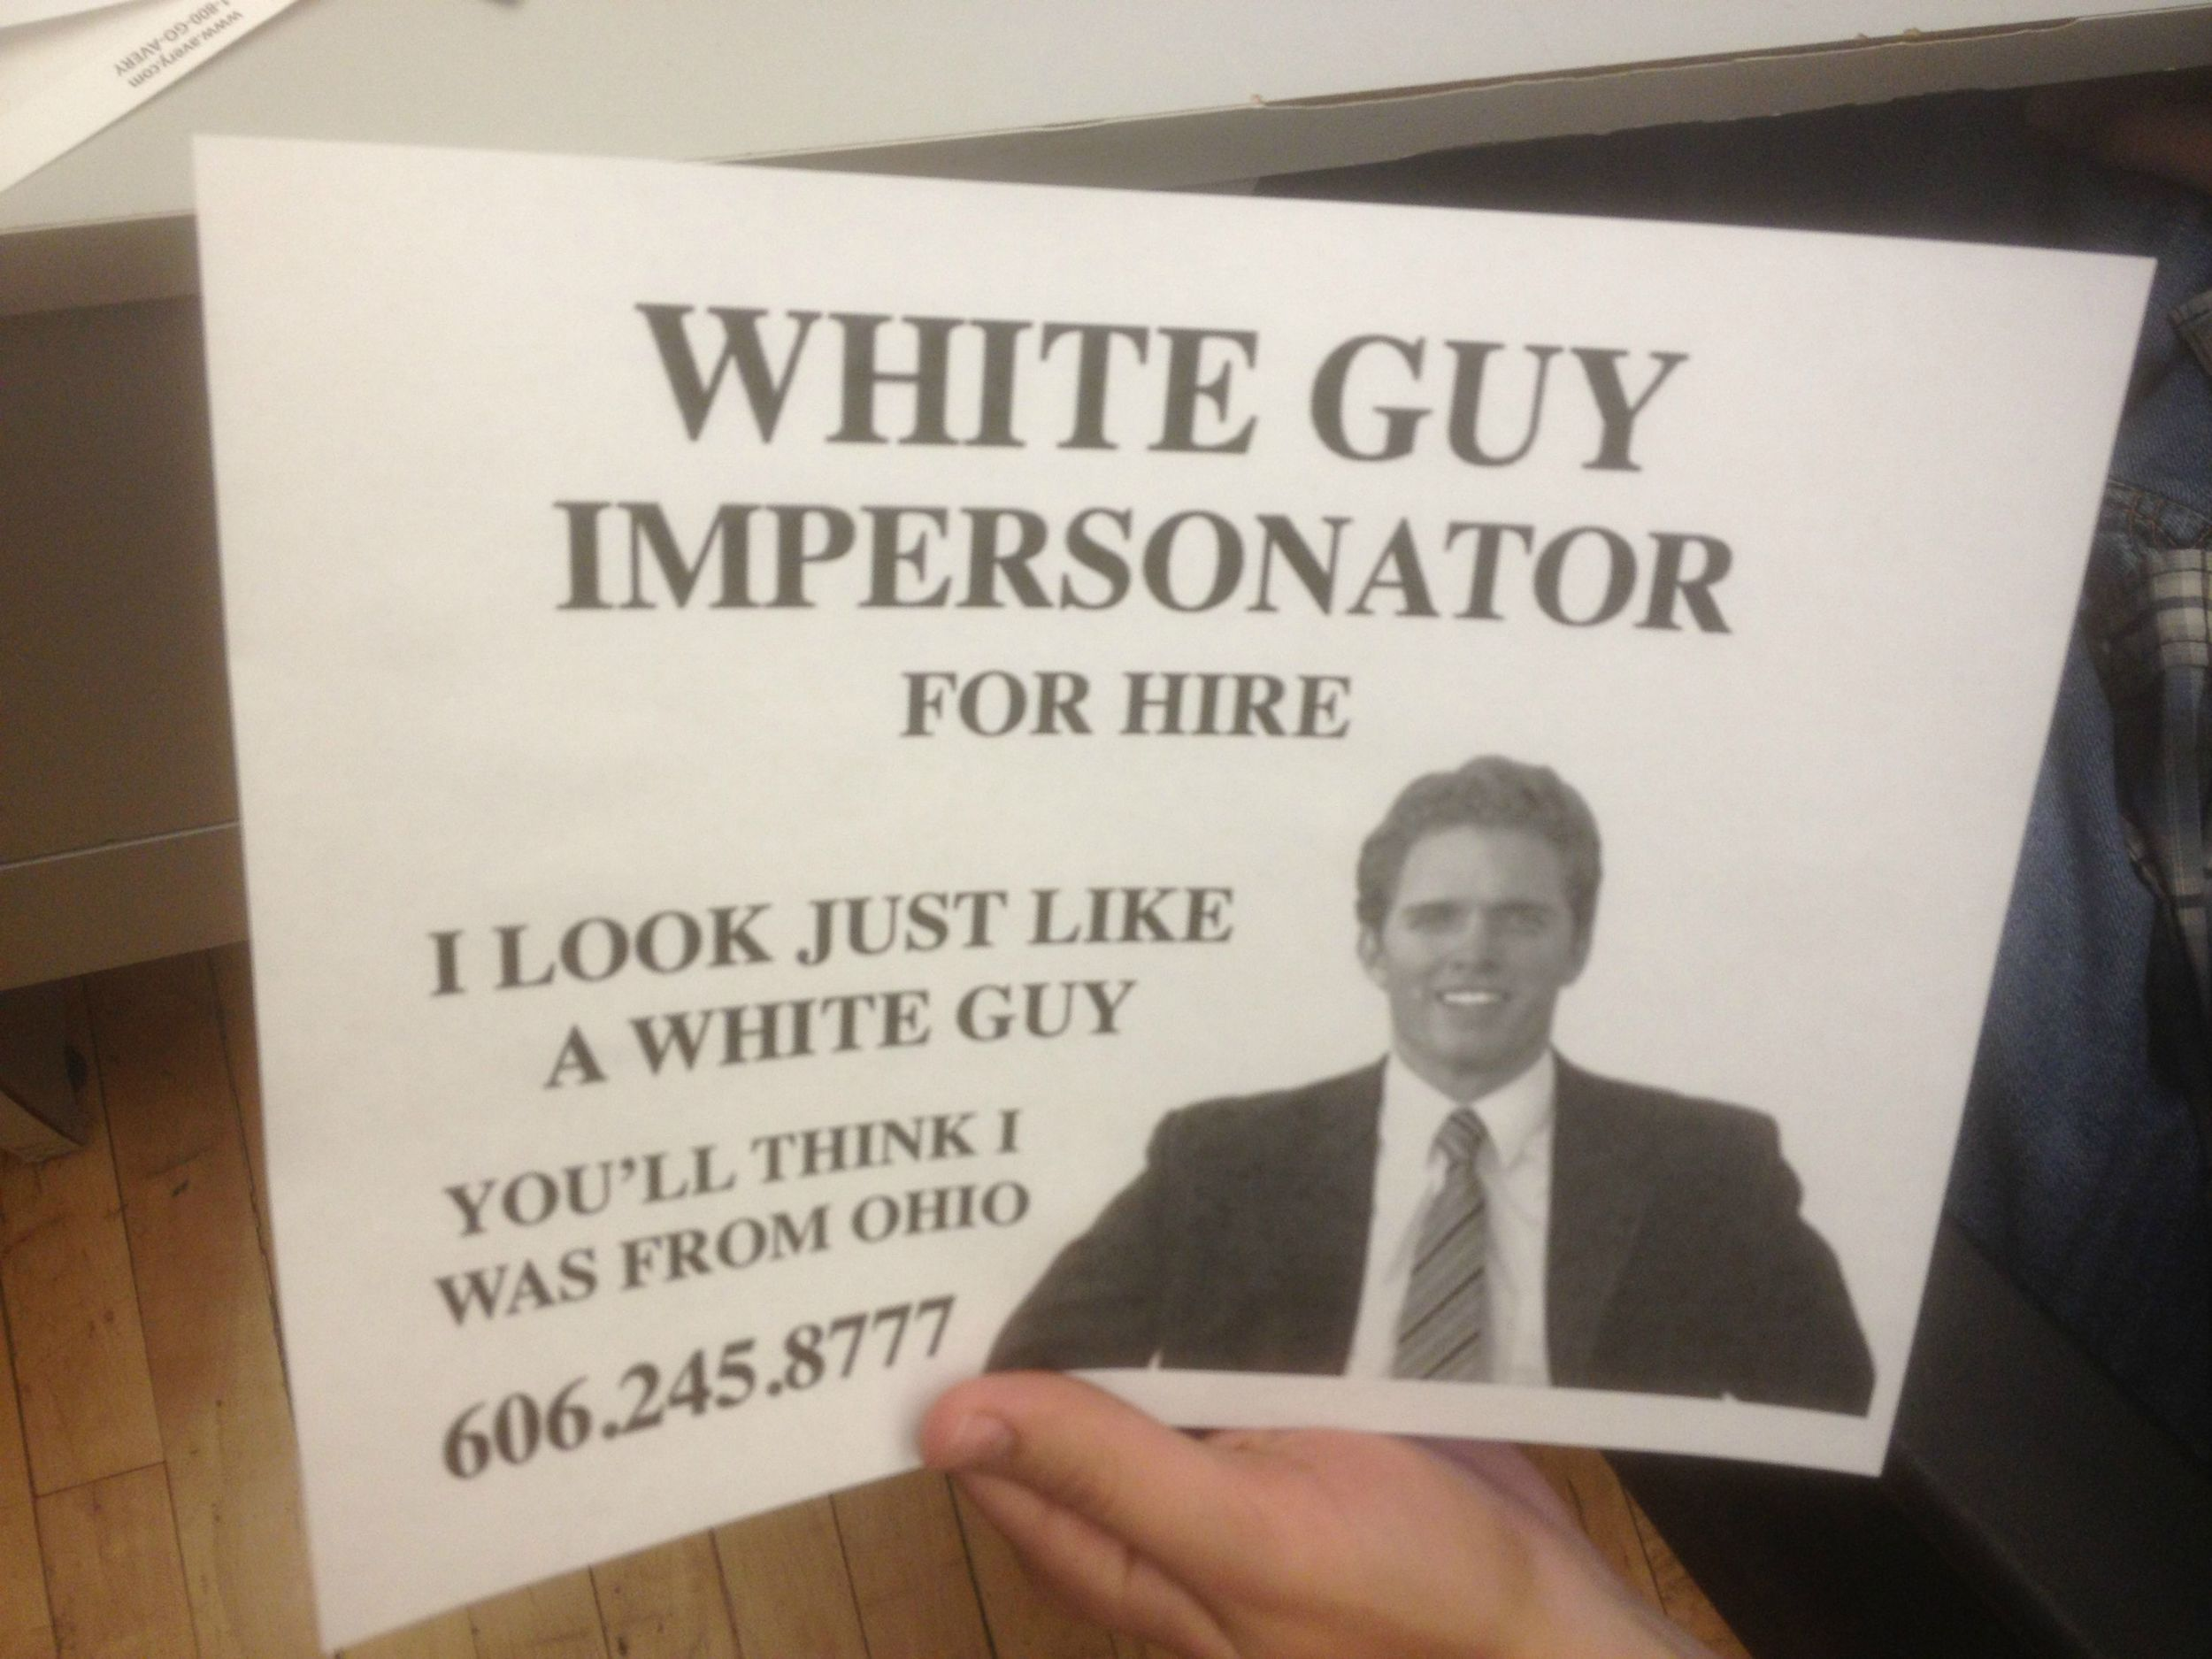 White Guy Impersonator.jpg